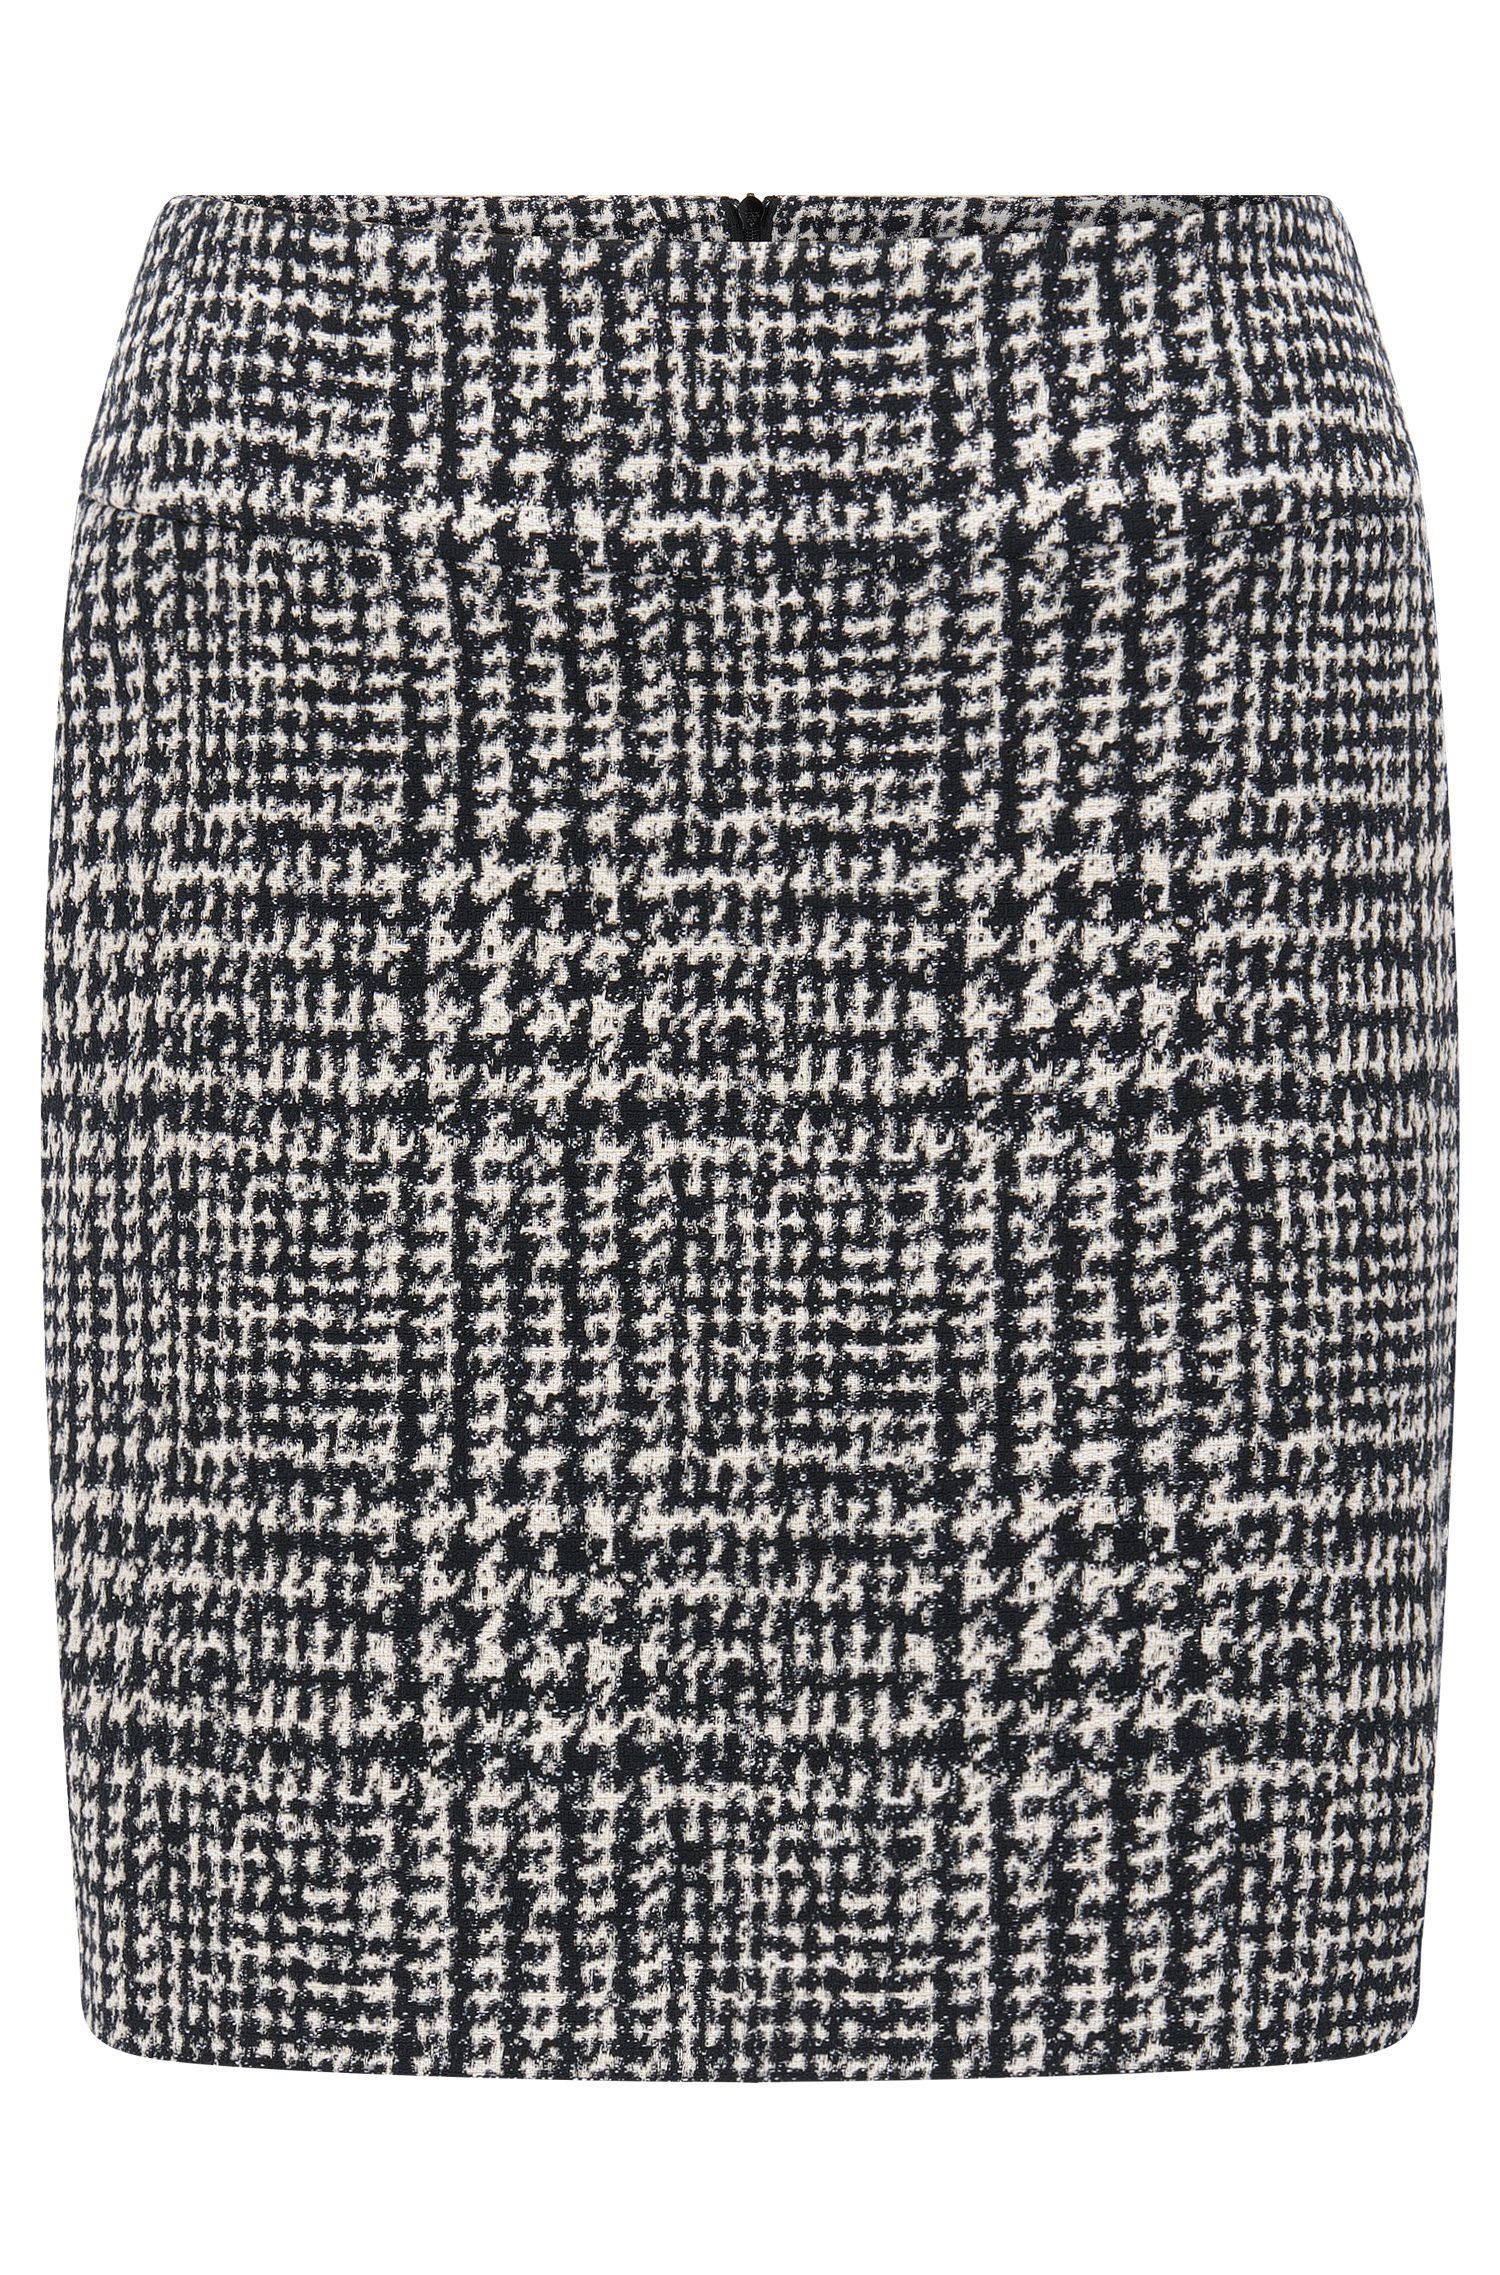 Houndstooth Bouclé Mini Skirt | Romis